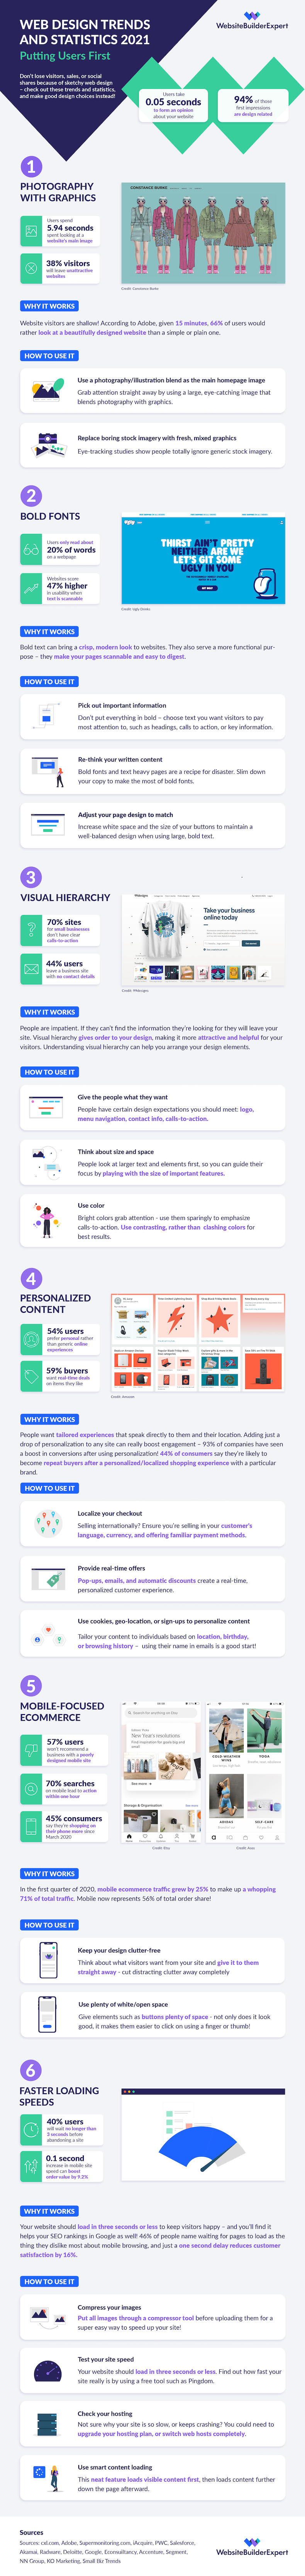 infographic on website design stats and trends for 2021